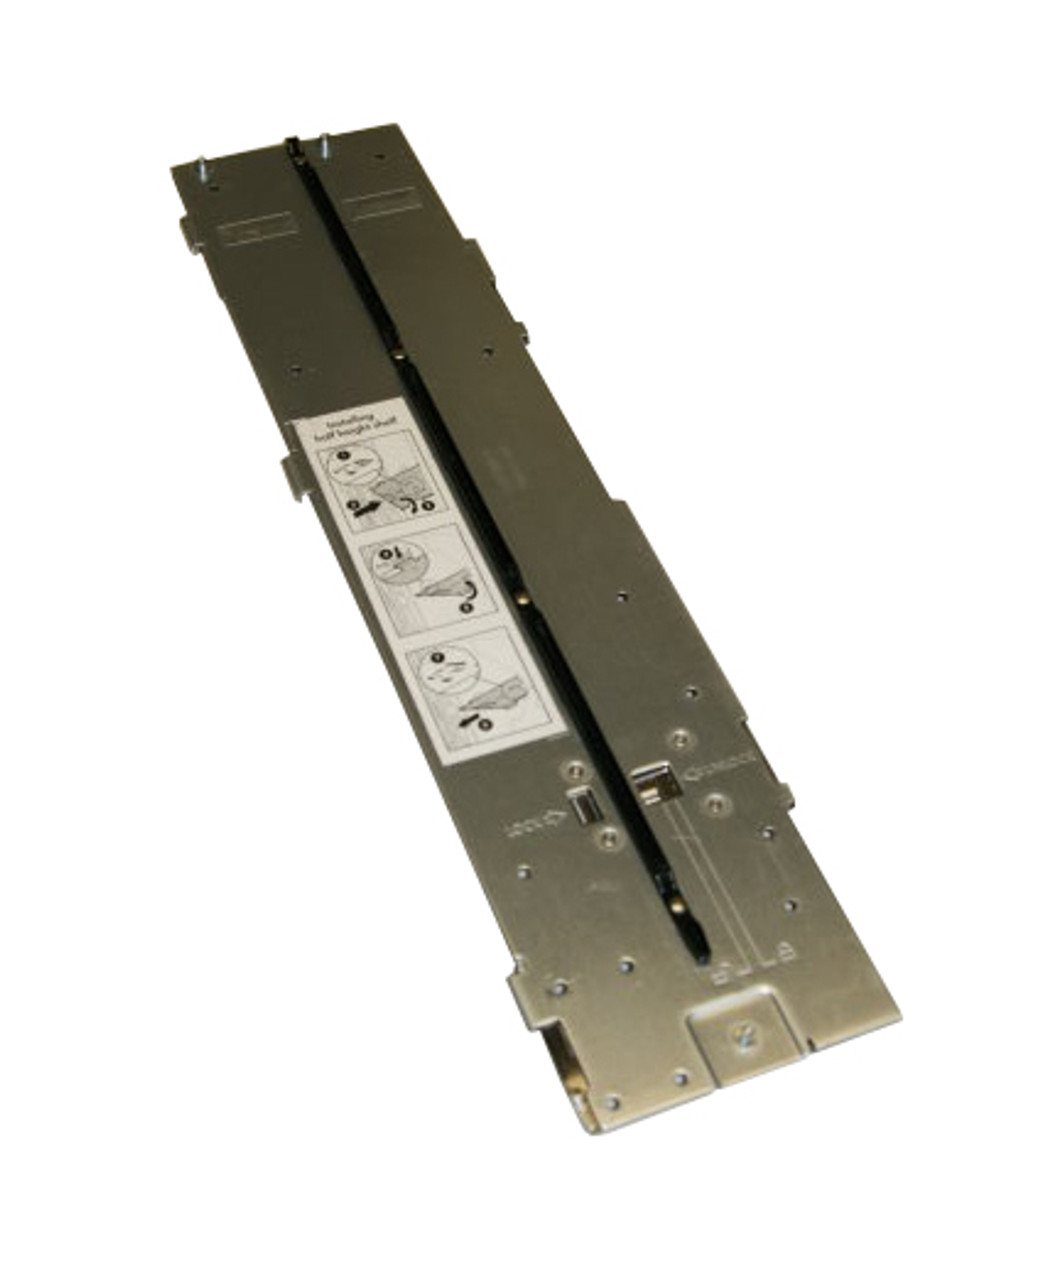 408375-001 - HP Half Height Shelf For C7000 Enclosure